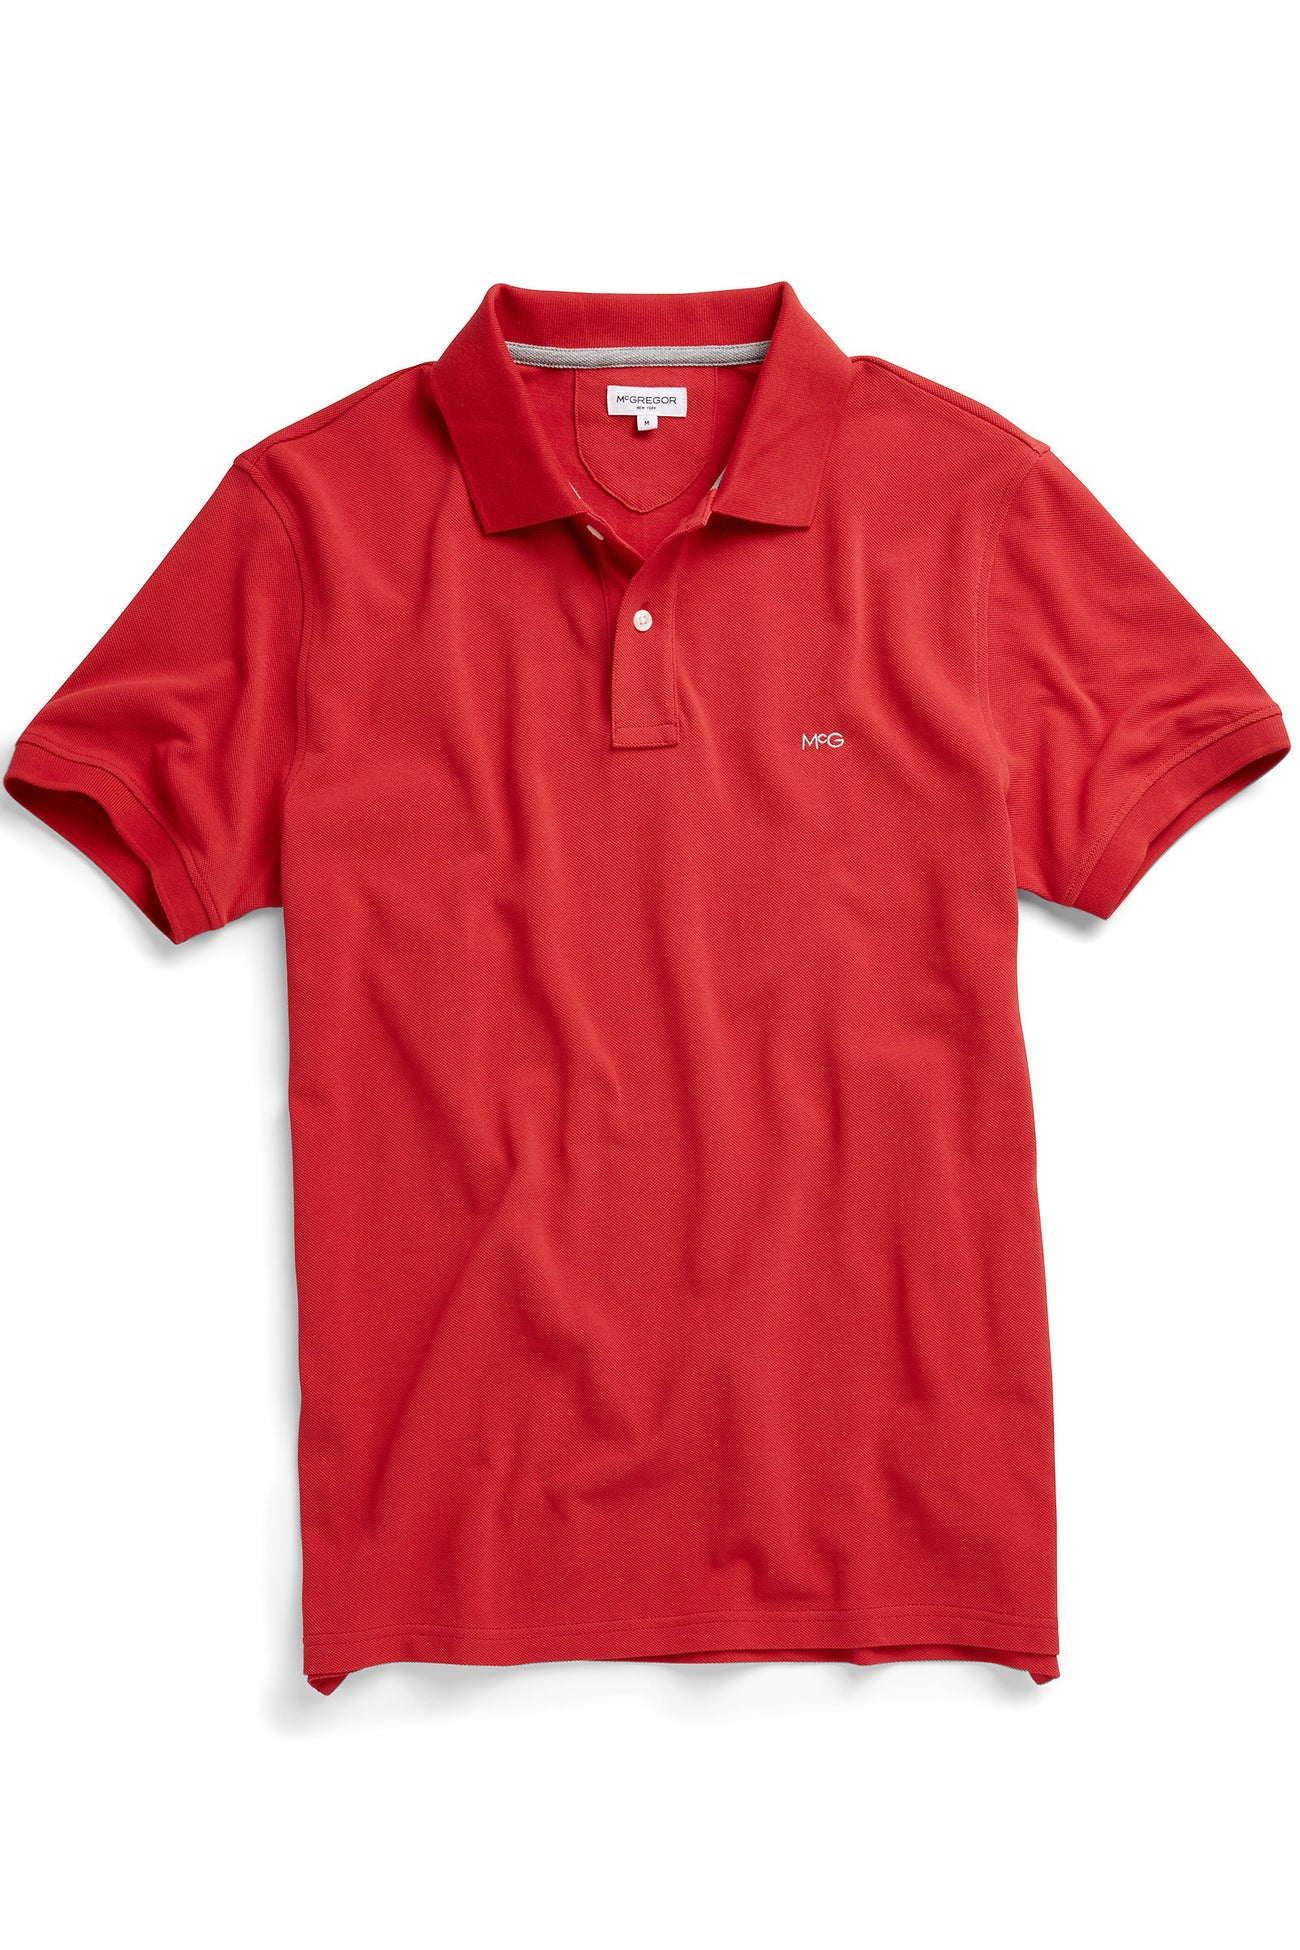 The McG RF Pique Polo S/s